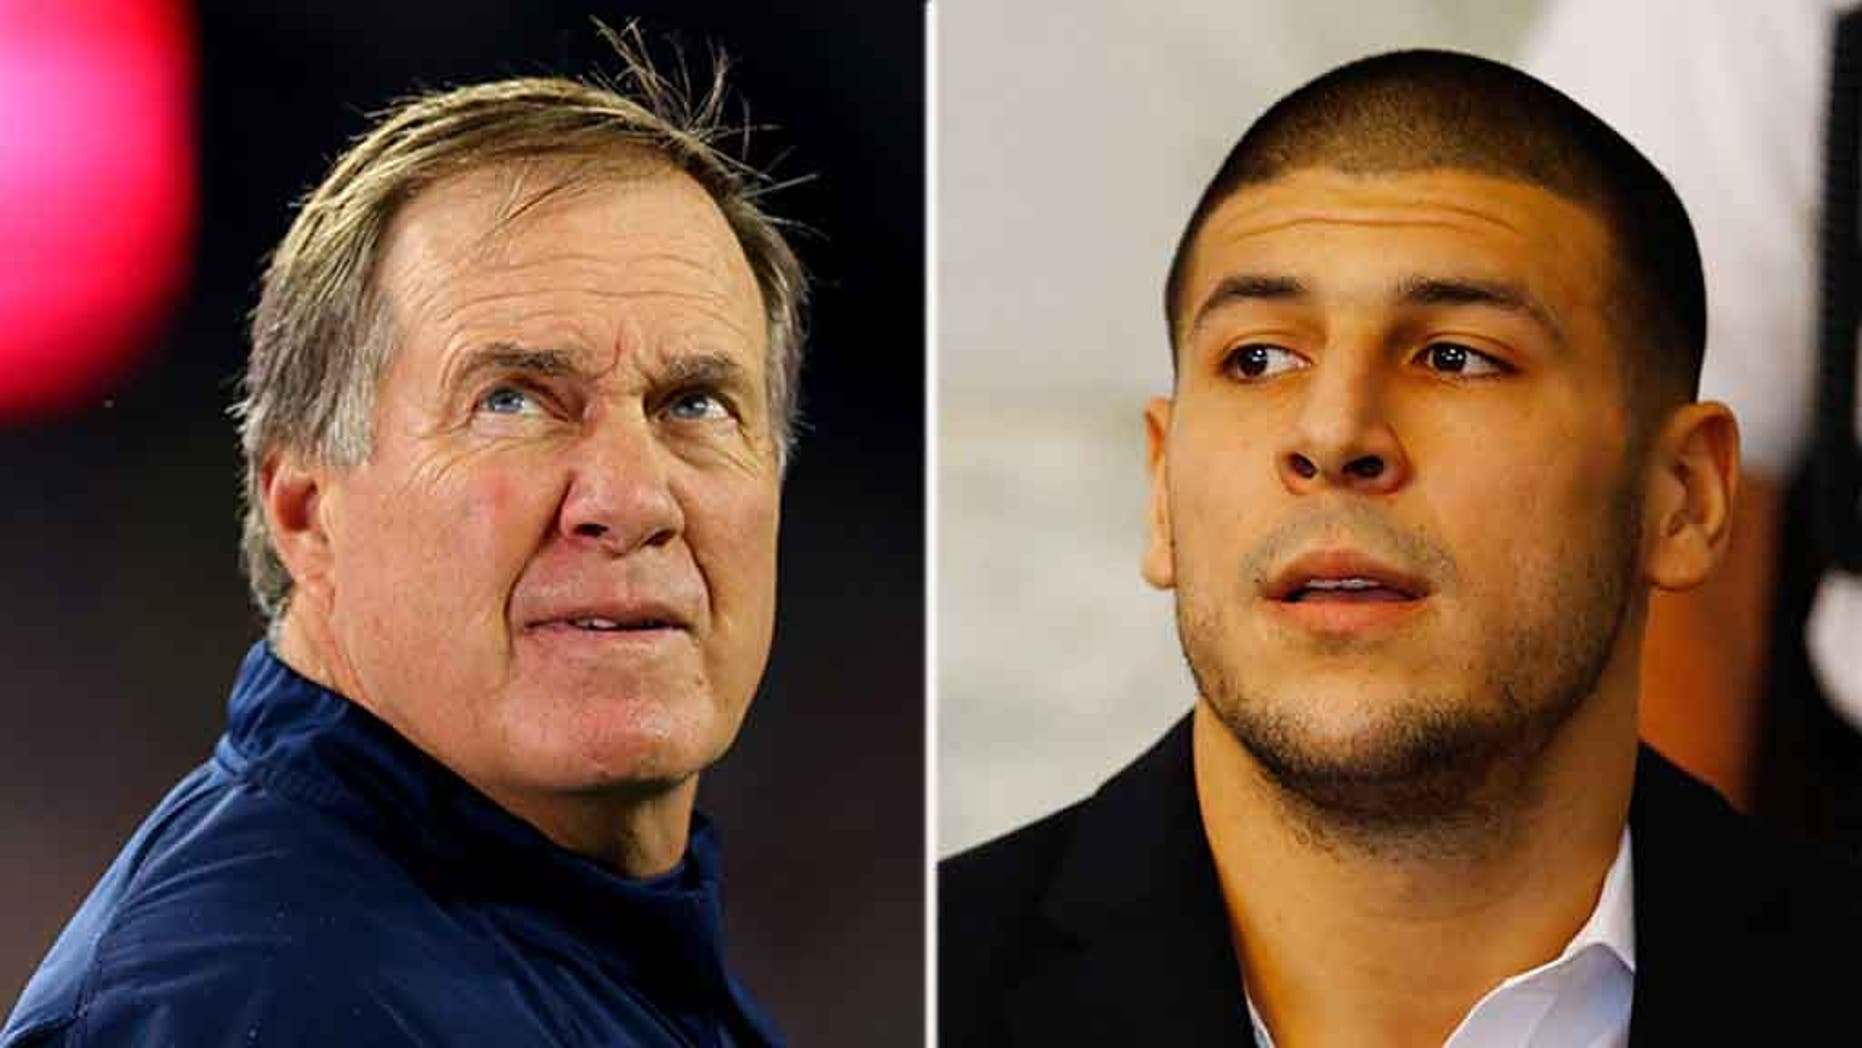 Aaron Hernandez, right, slammed Bill Belichick while he was in jail on a murder charge.